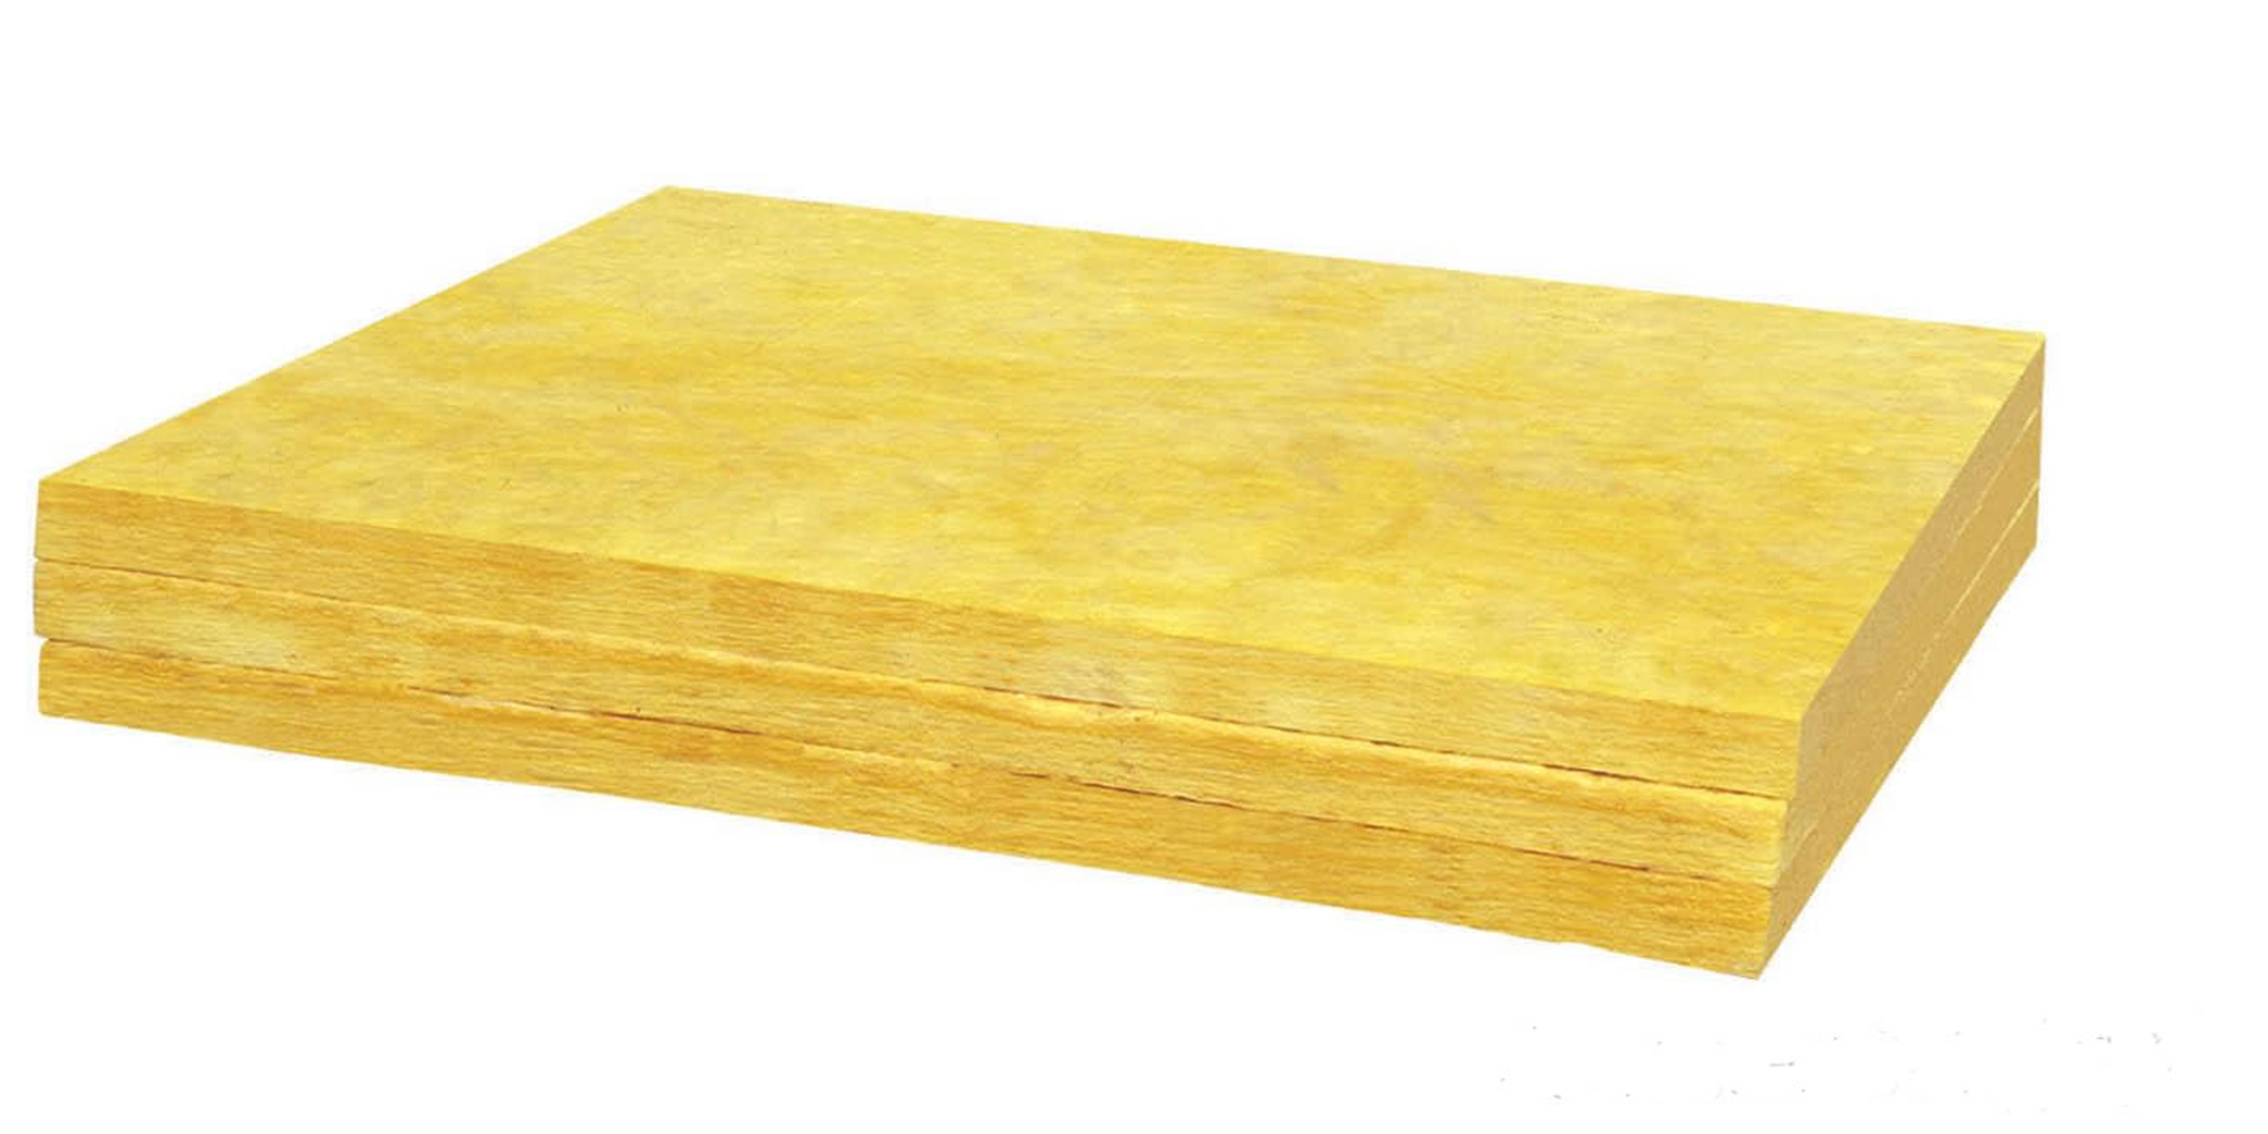 Glass wool insulation material